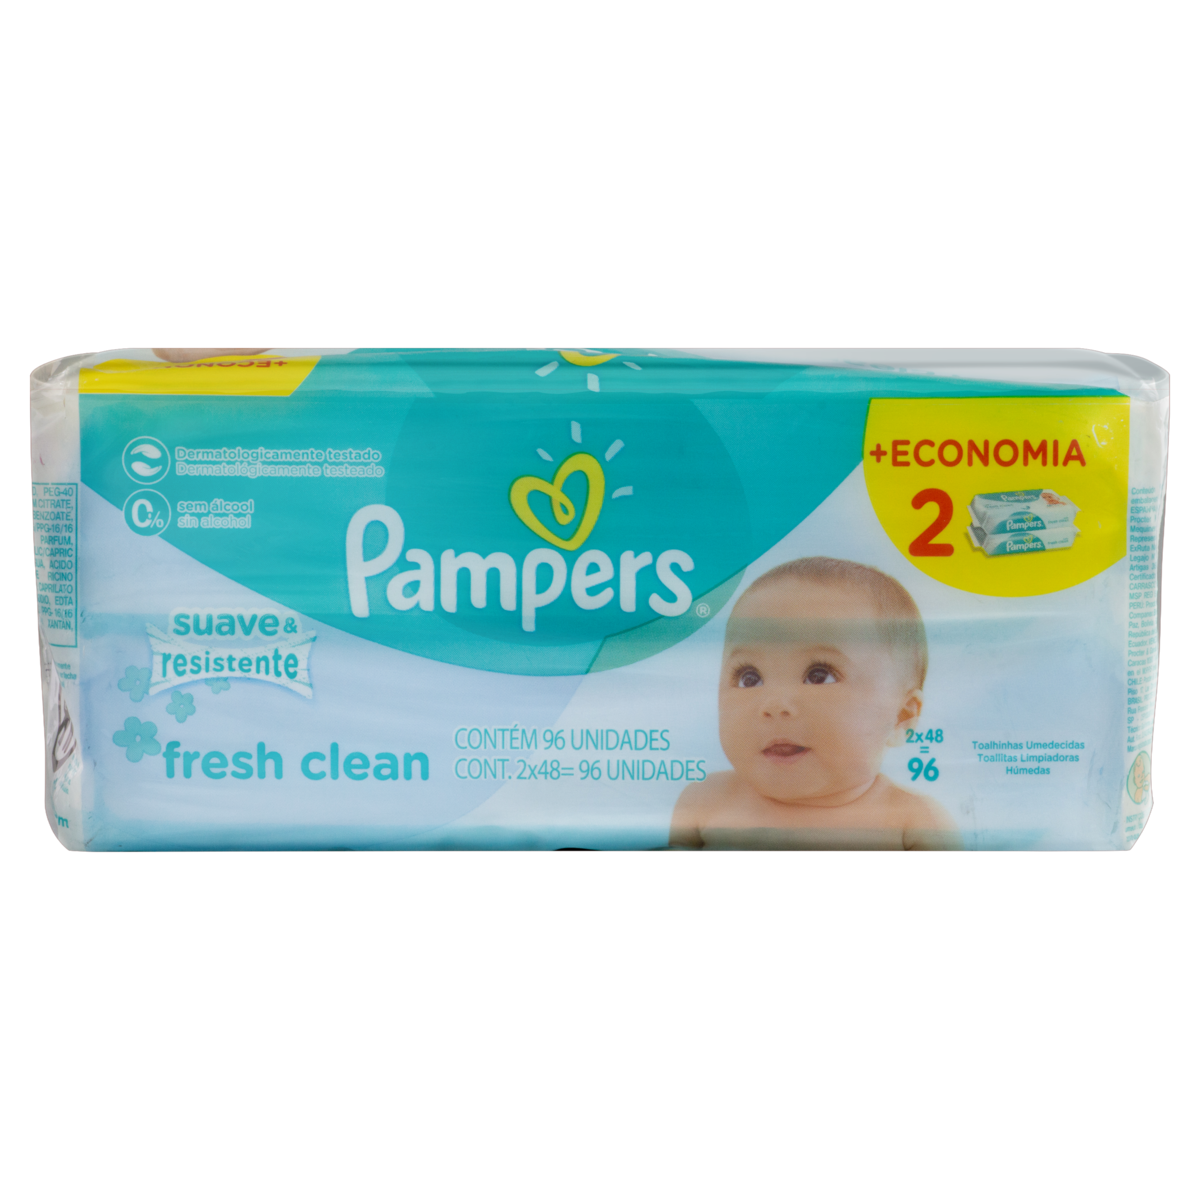 4015400763727 - LENÇO UMEDECIDO SACHE PAMPERS C/96 REGULAR UNIT